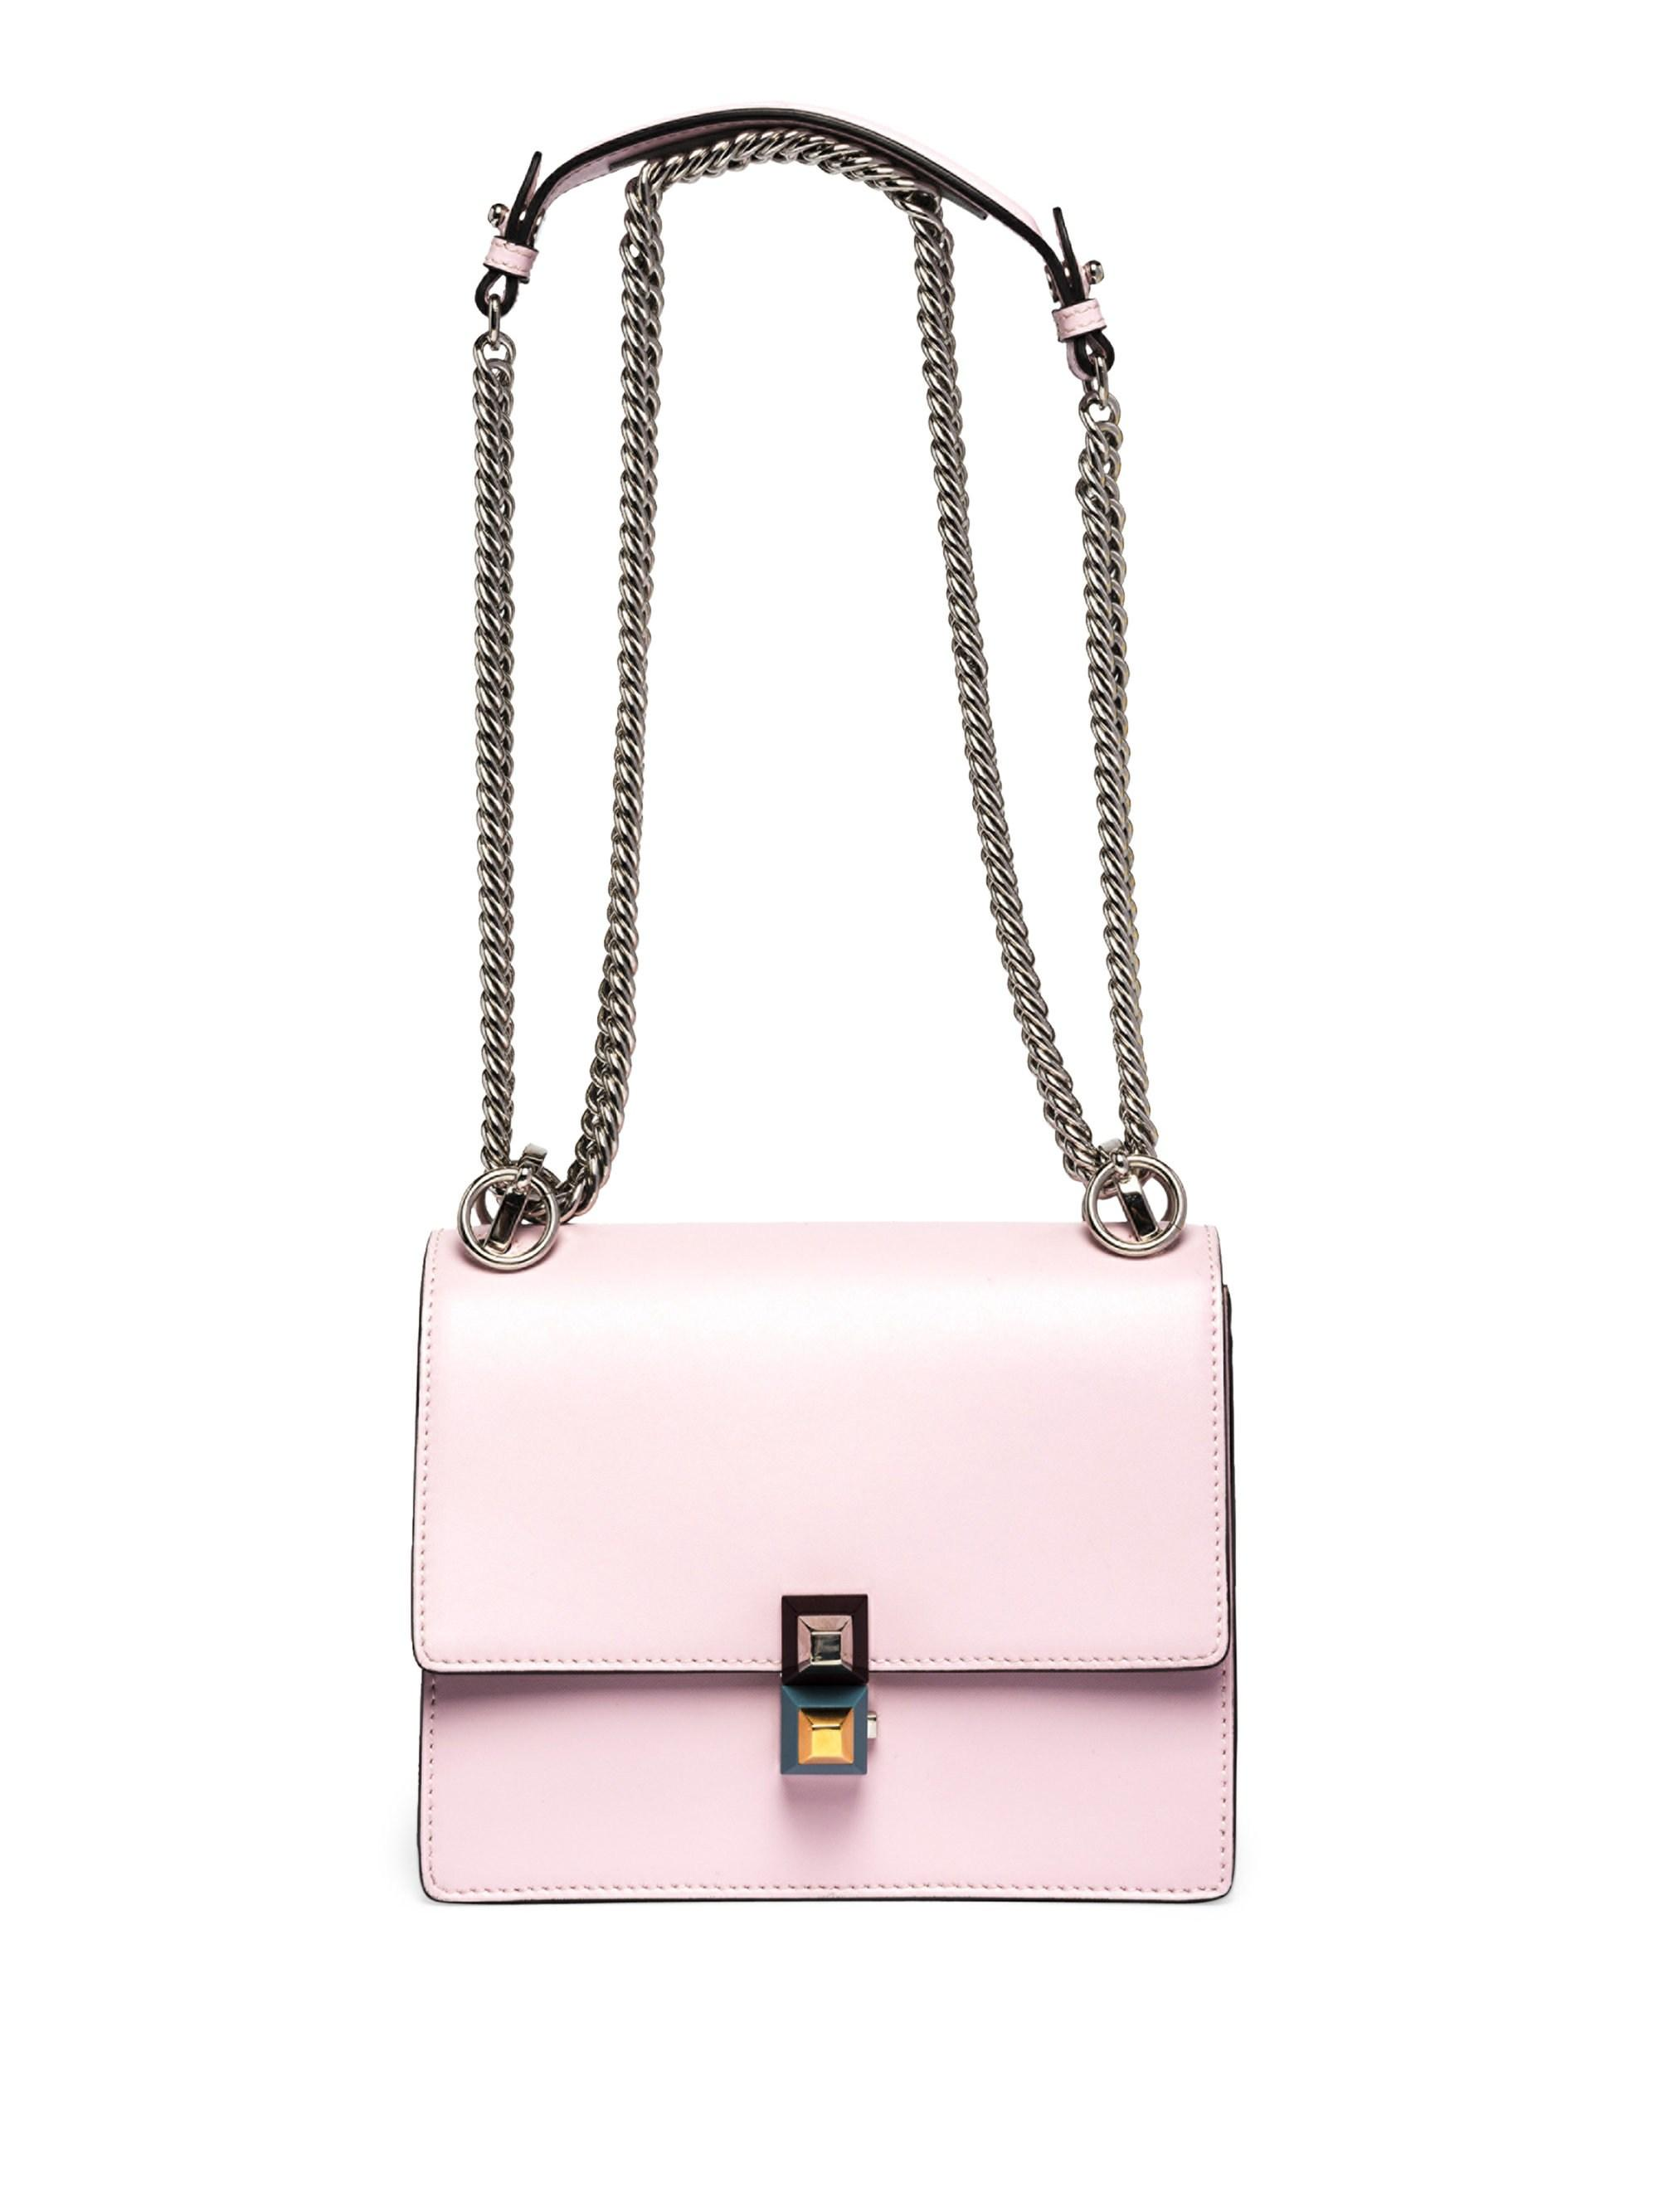 d4fa163346 Lyst - Fendi Kan I Leather Crossbody Bag in Pink